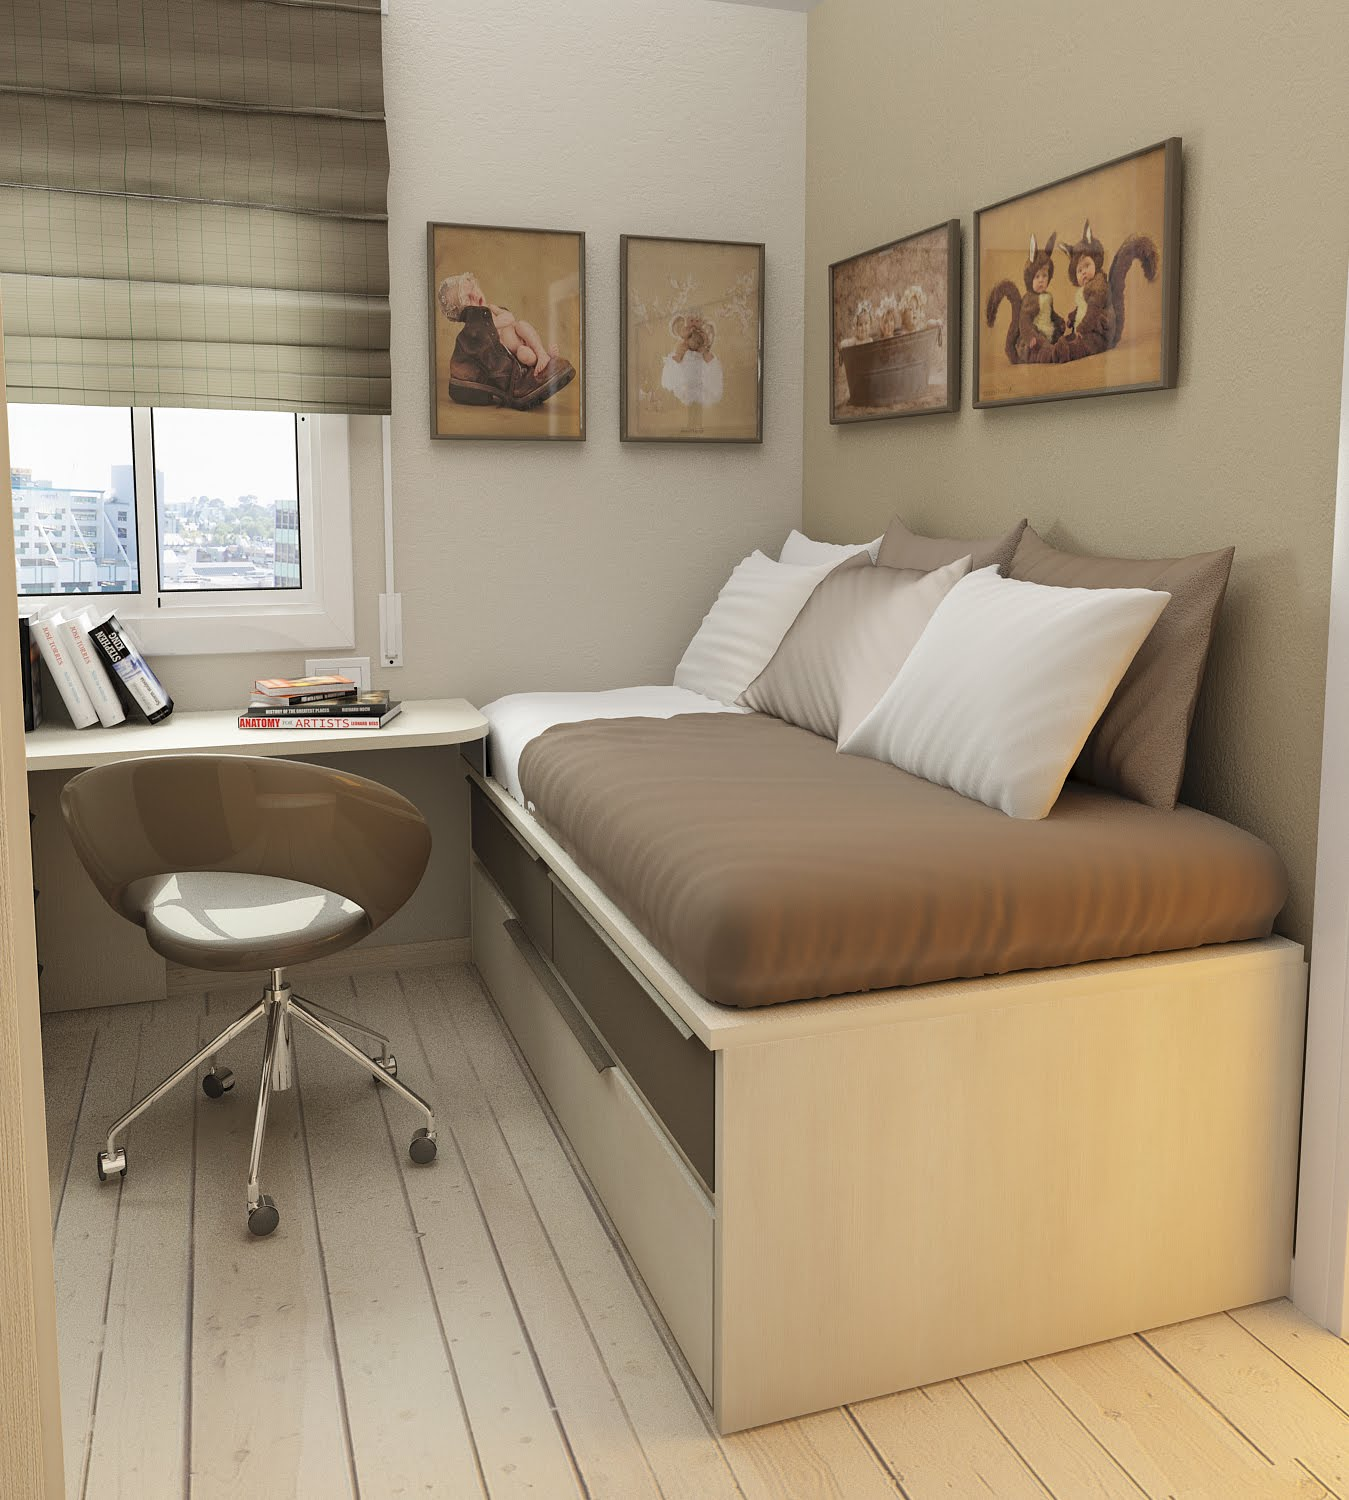 Small Floorspace Kids Rooms on Small Rooms  id=27657